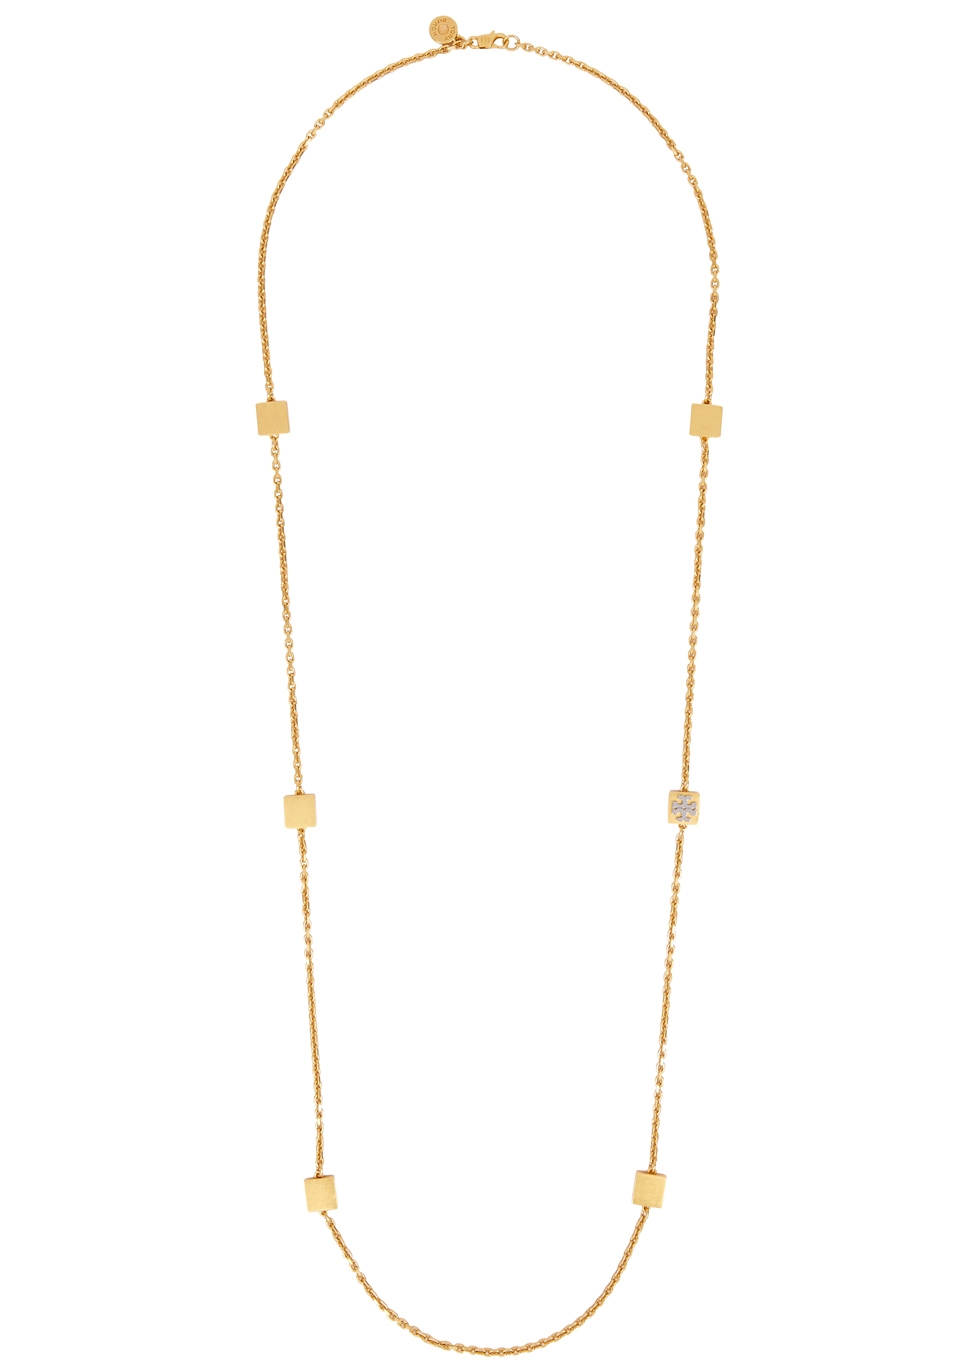 TORY BURCH GOLD-TONE LOGO NECKLACE